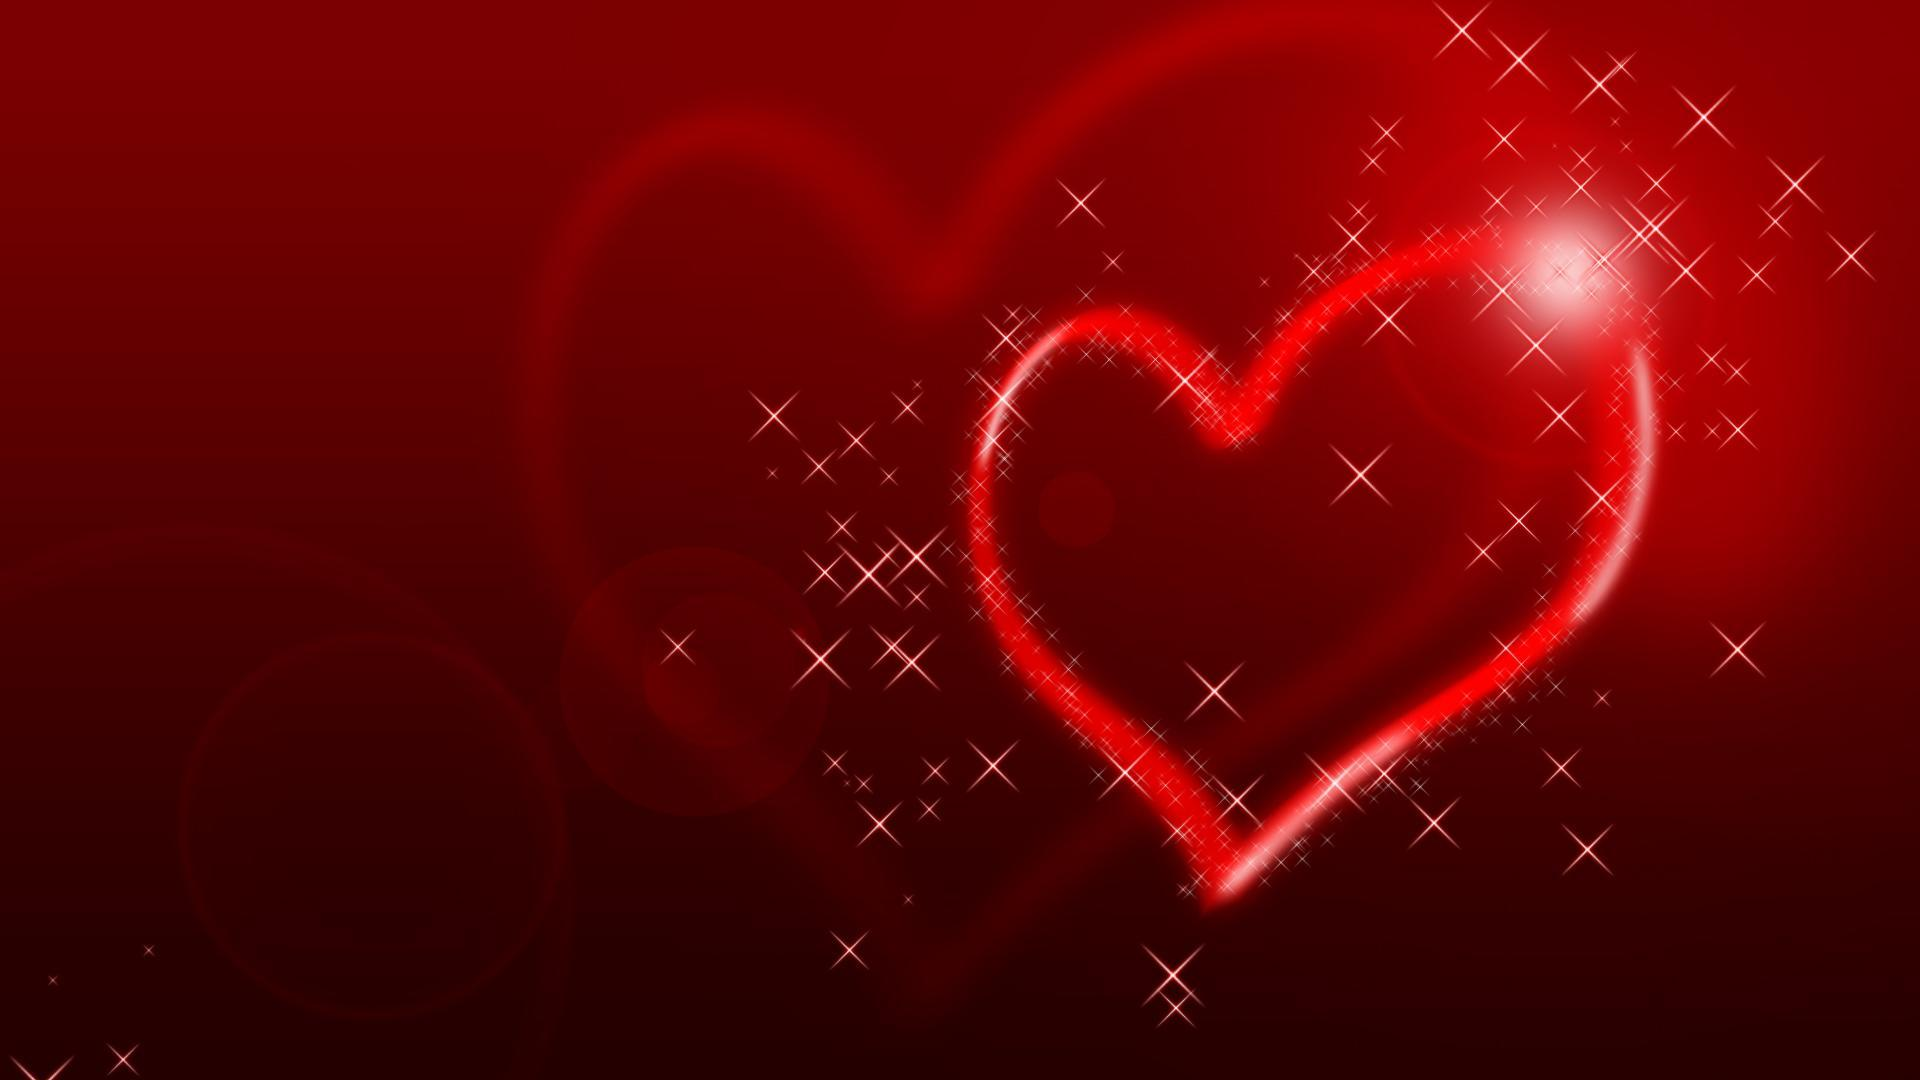 Red Love Wallpapers - Wallpaper cave